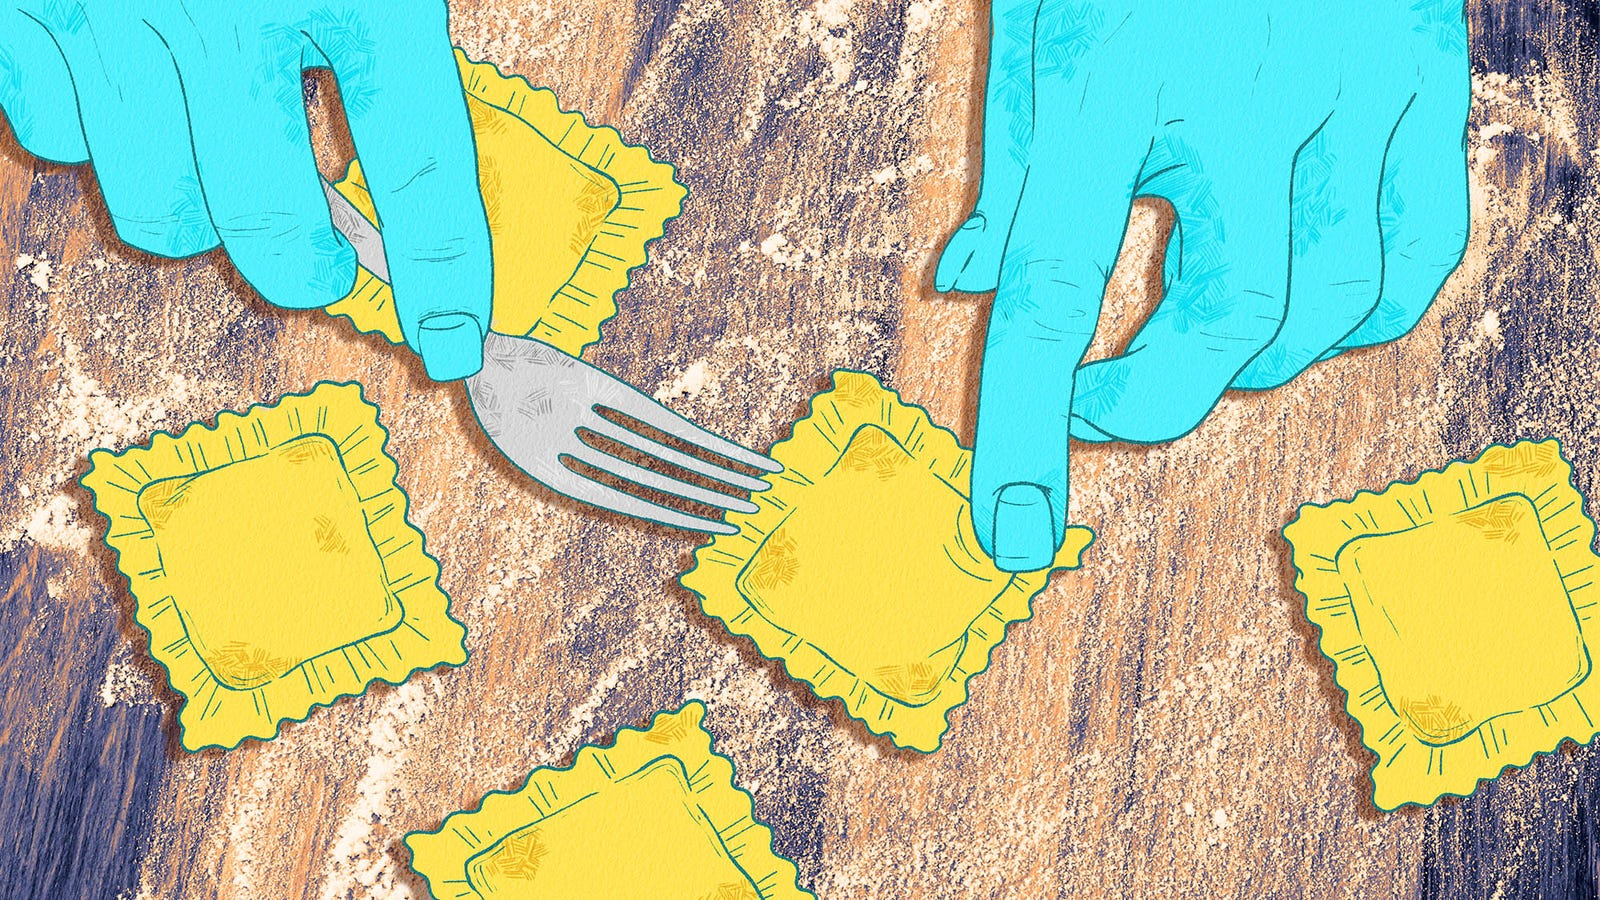 How I learned to make ravioli in my tiny kitchen